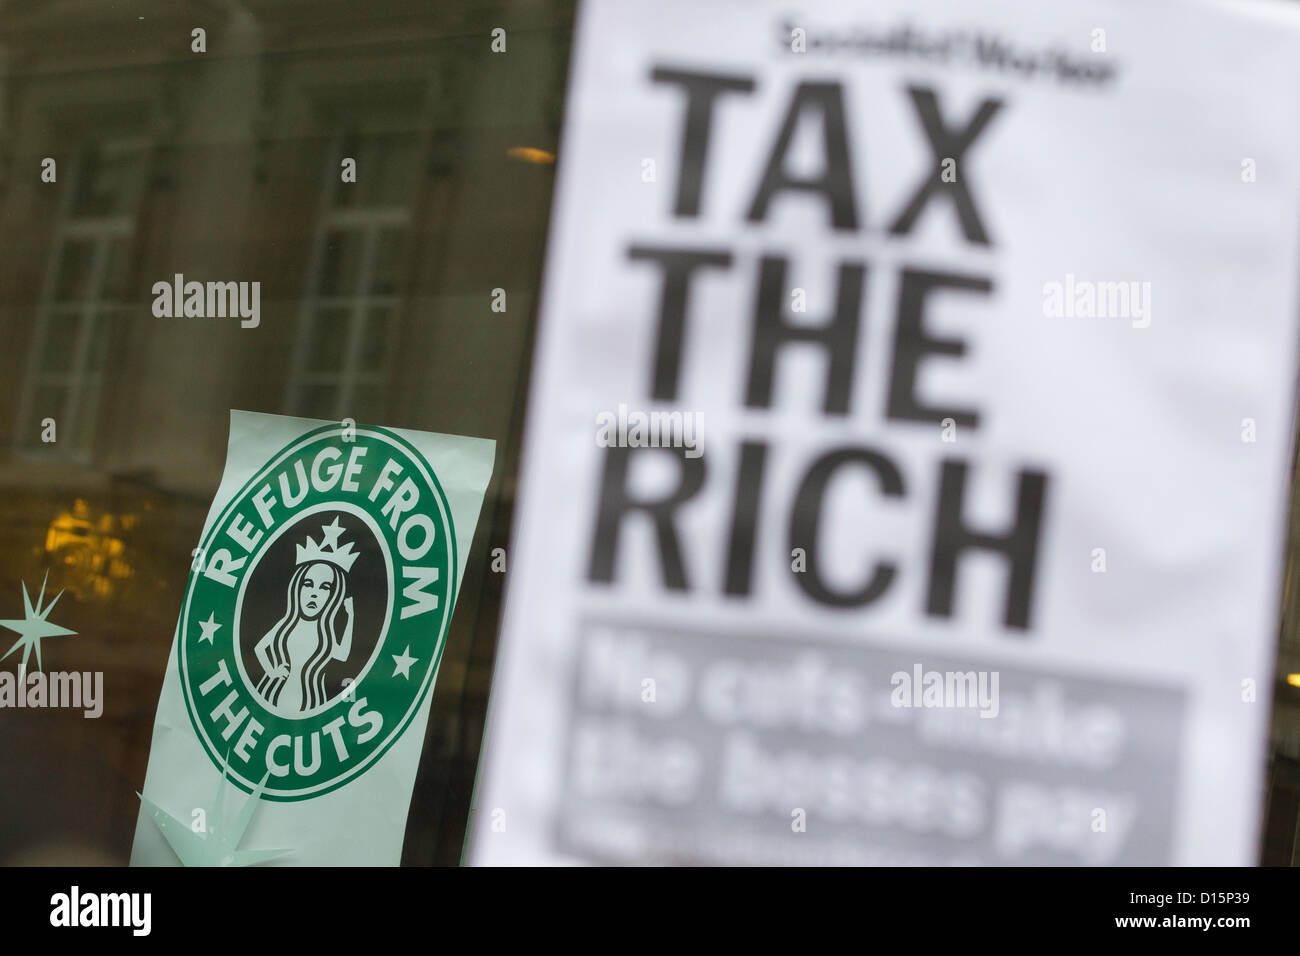 starbucks uk tax avoidance Have tax avoidance allegations harmed amazon and starbucks in the uk a new report claims the us giants' supposed failure to pay their dues has tanked their reputations.